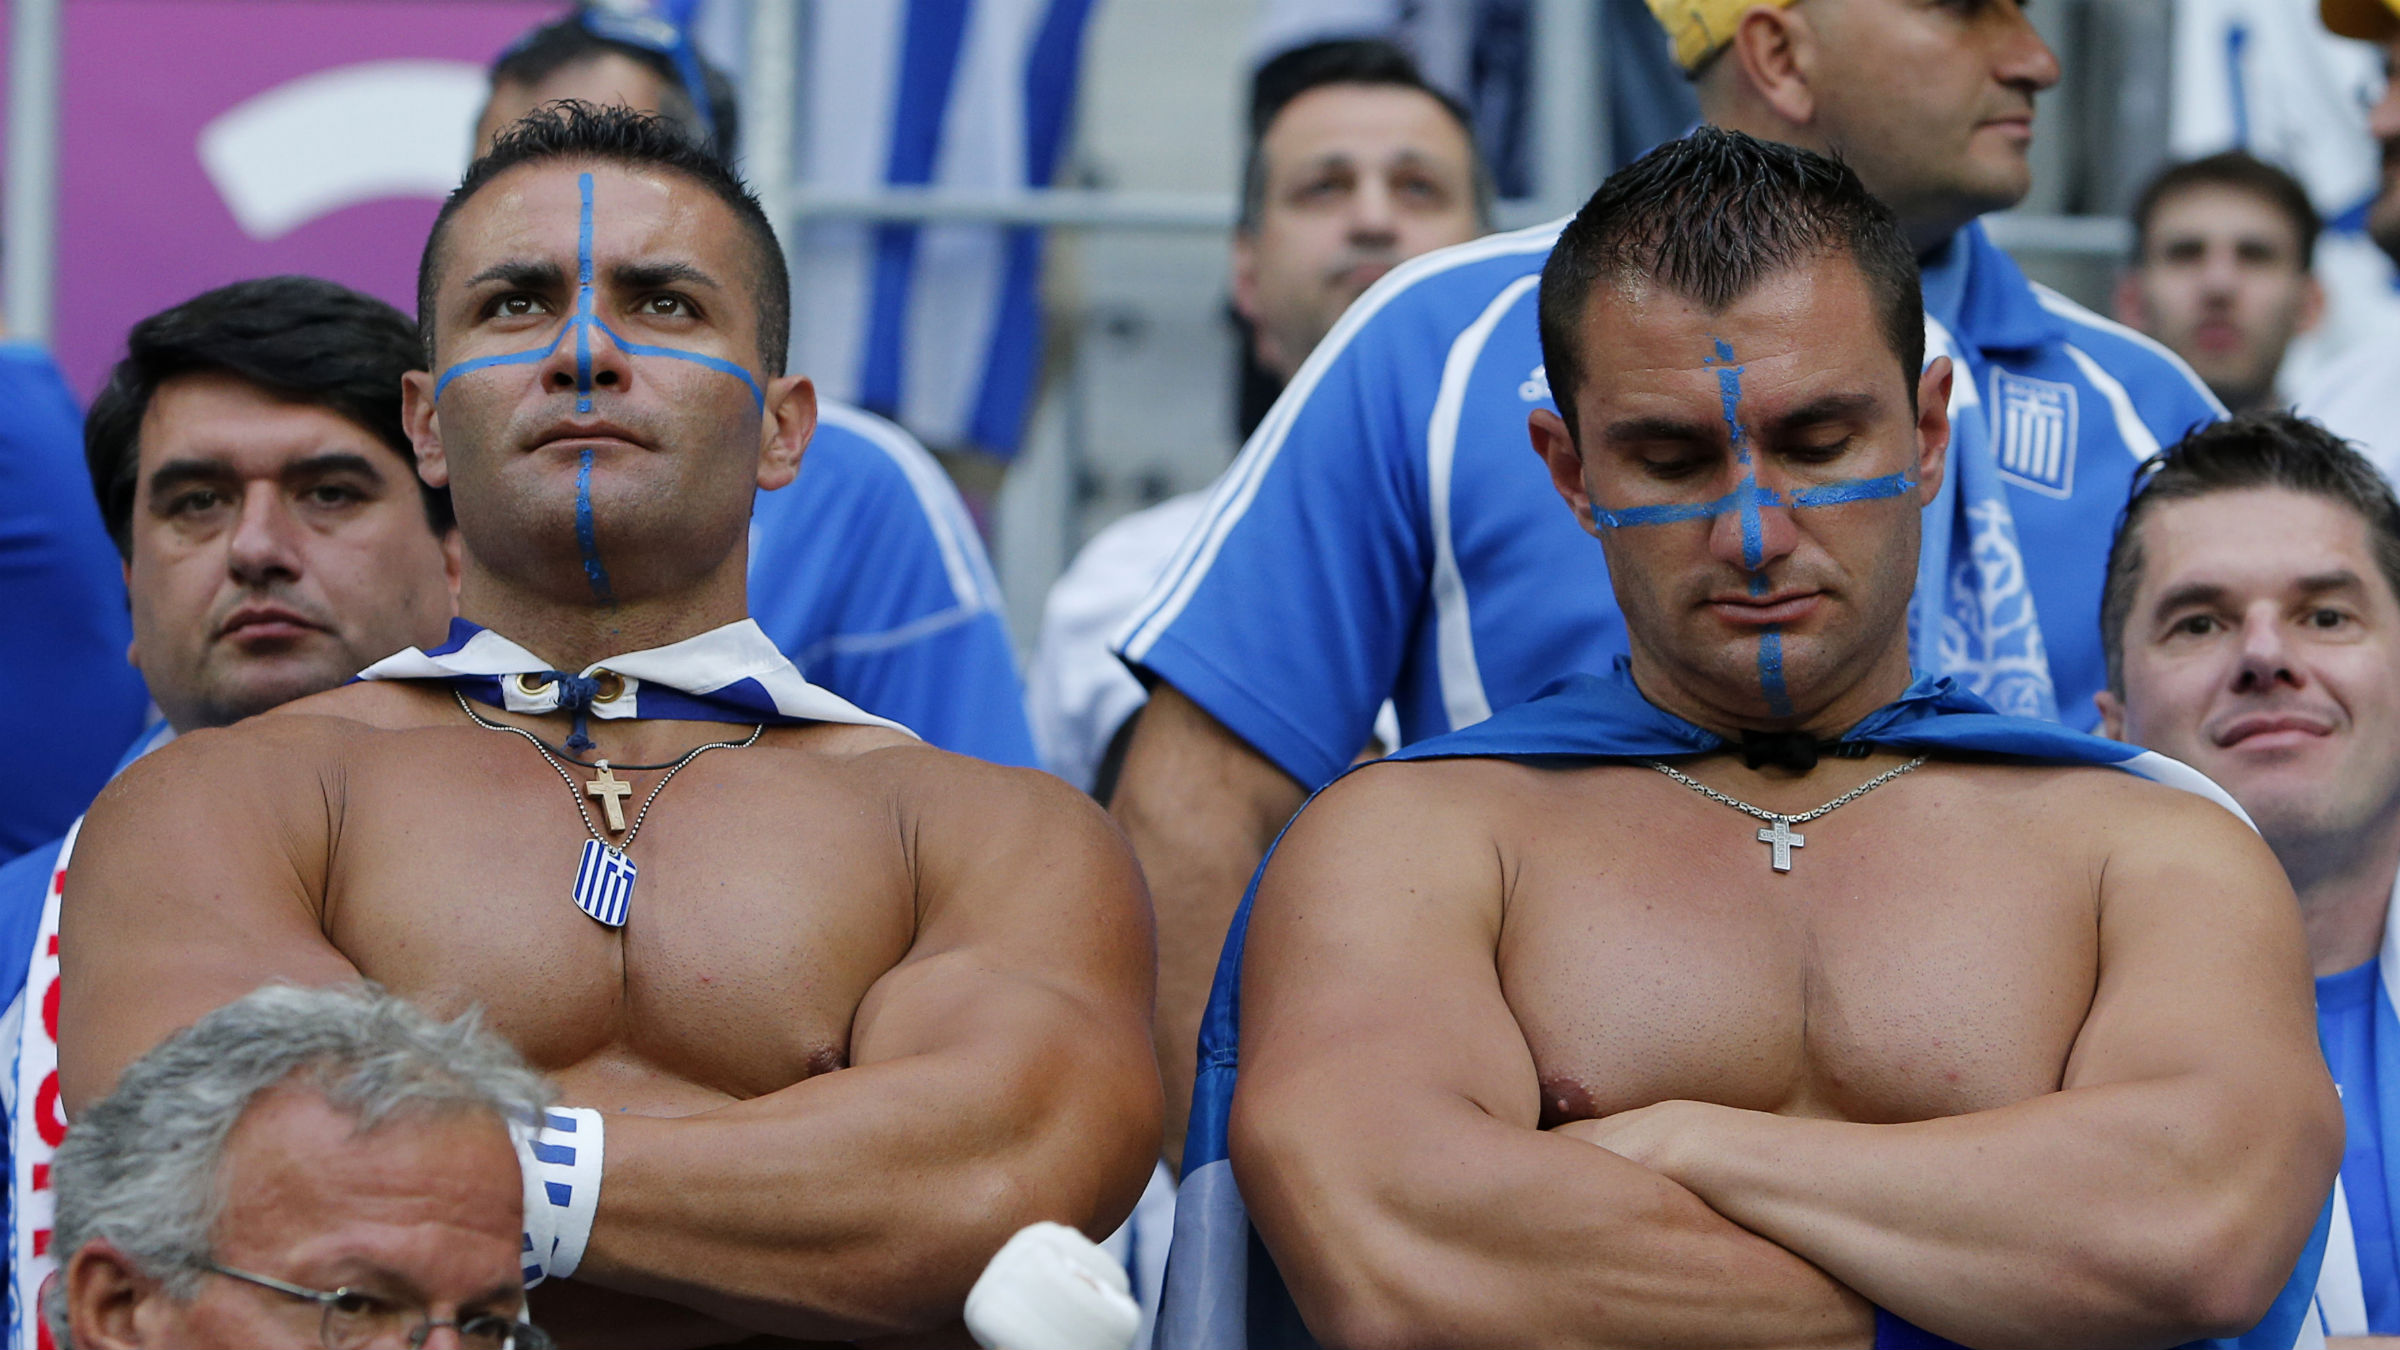 Greek fans stand dejected after the Euro 2012 soccer championship Group A match between Greece and Czech Republic in Wroclaw, Poland, Tuesday, June 12, 2012. Greece lost the match 1-2.